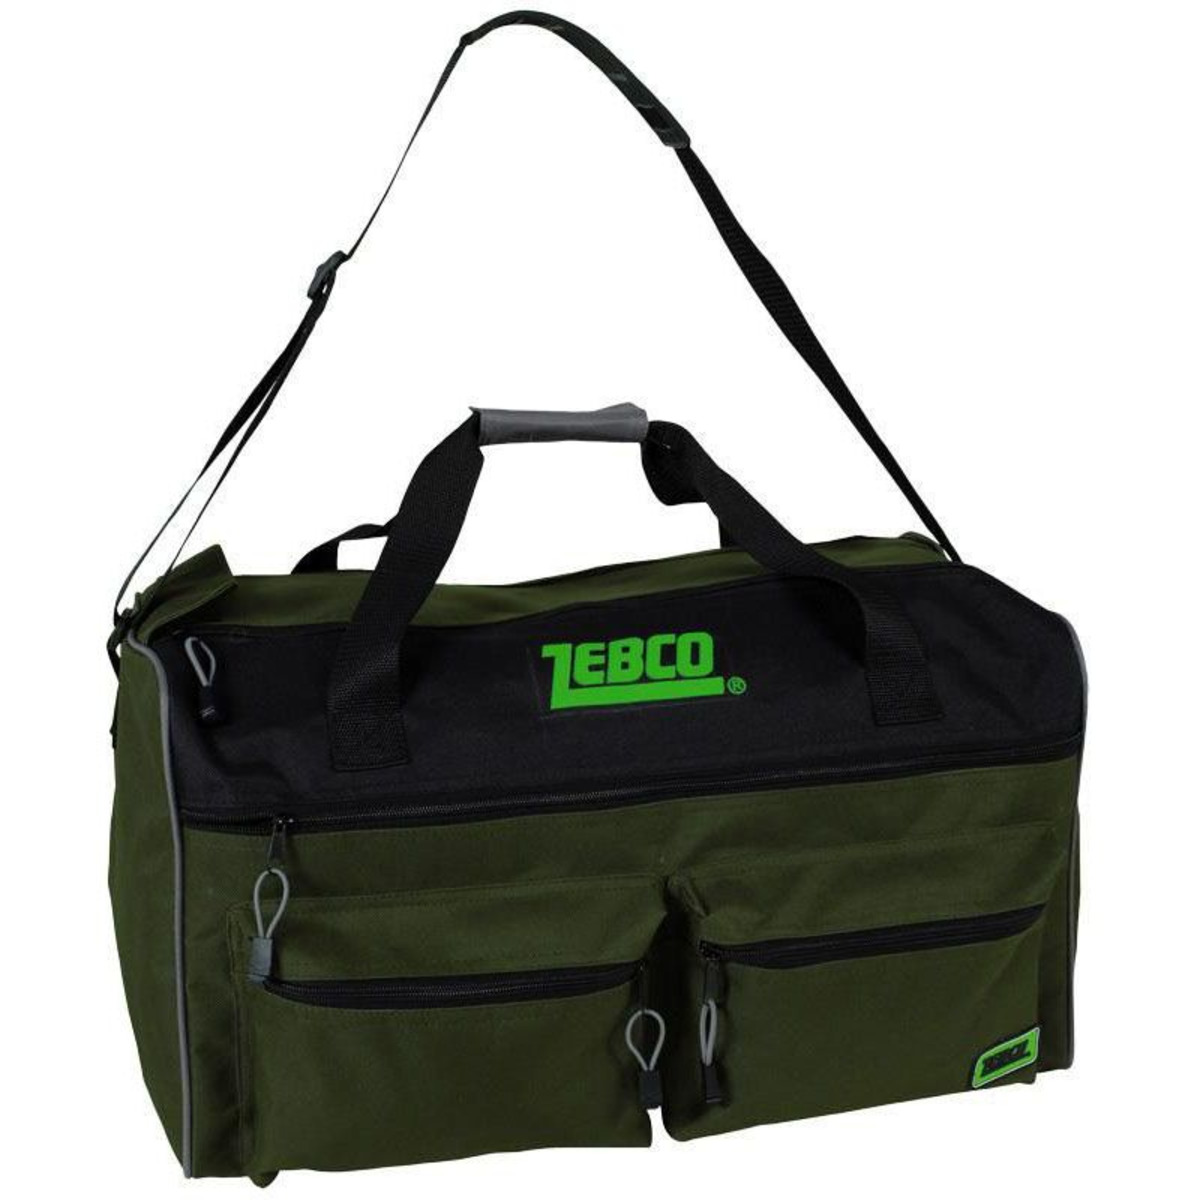 Zebco All Round Carryall - 39x24x24 cm